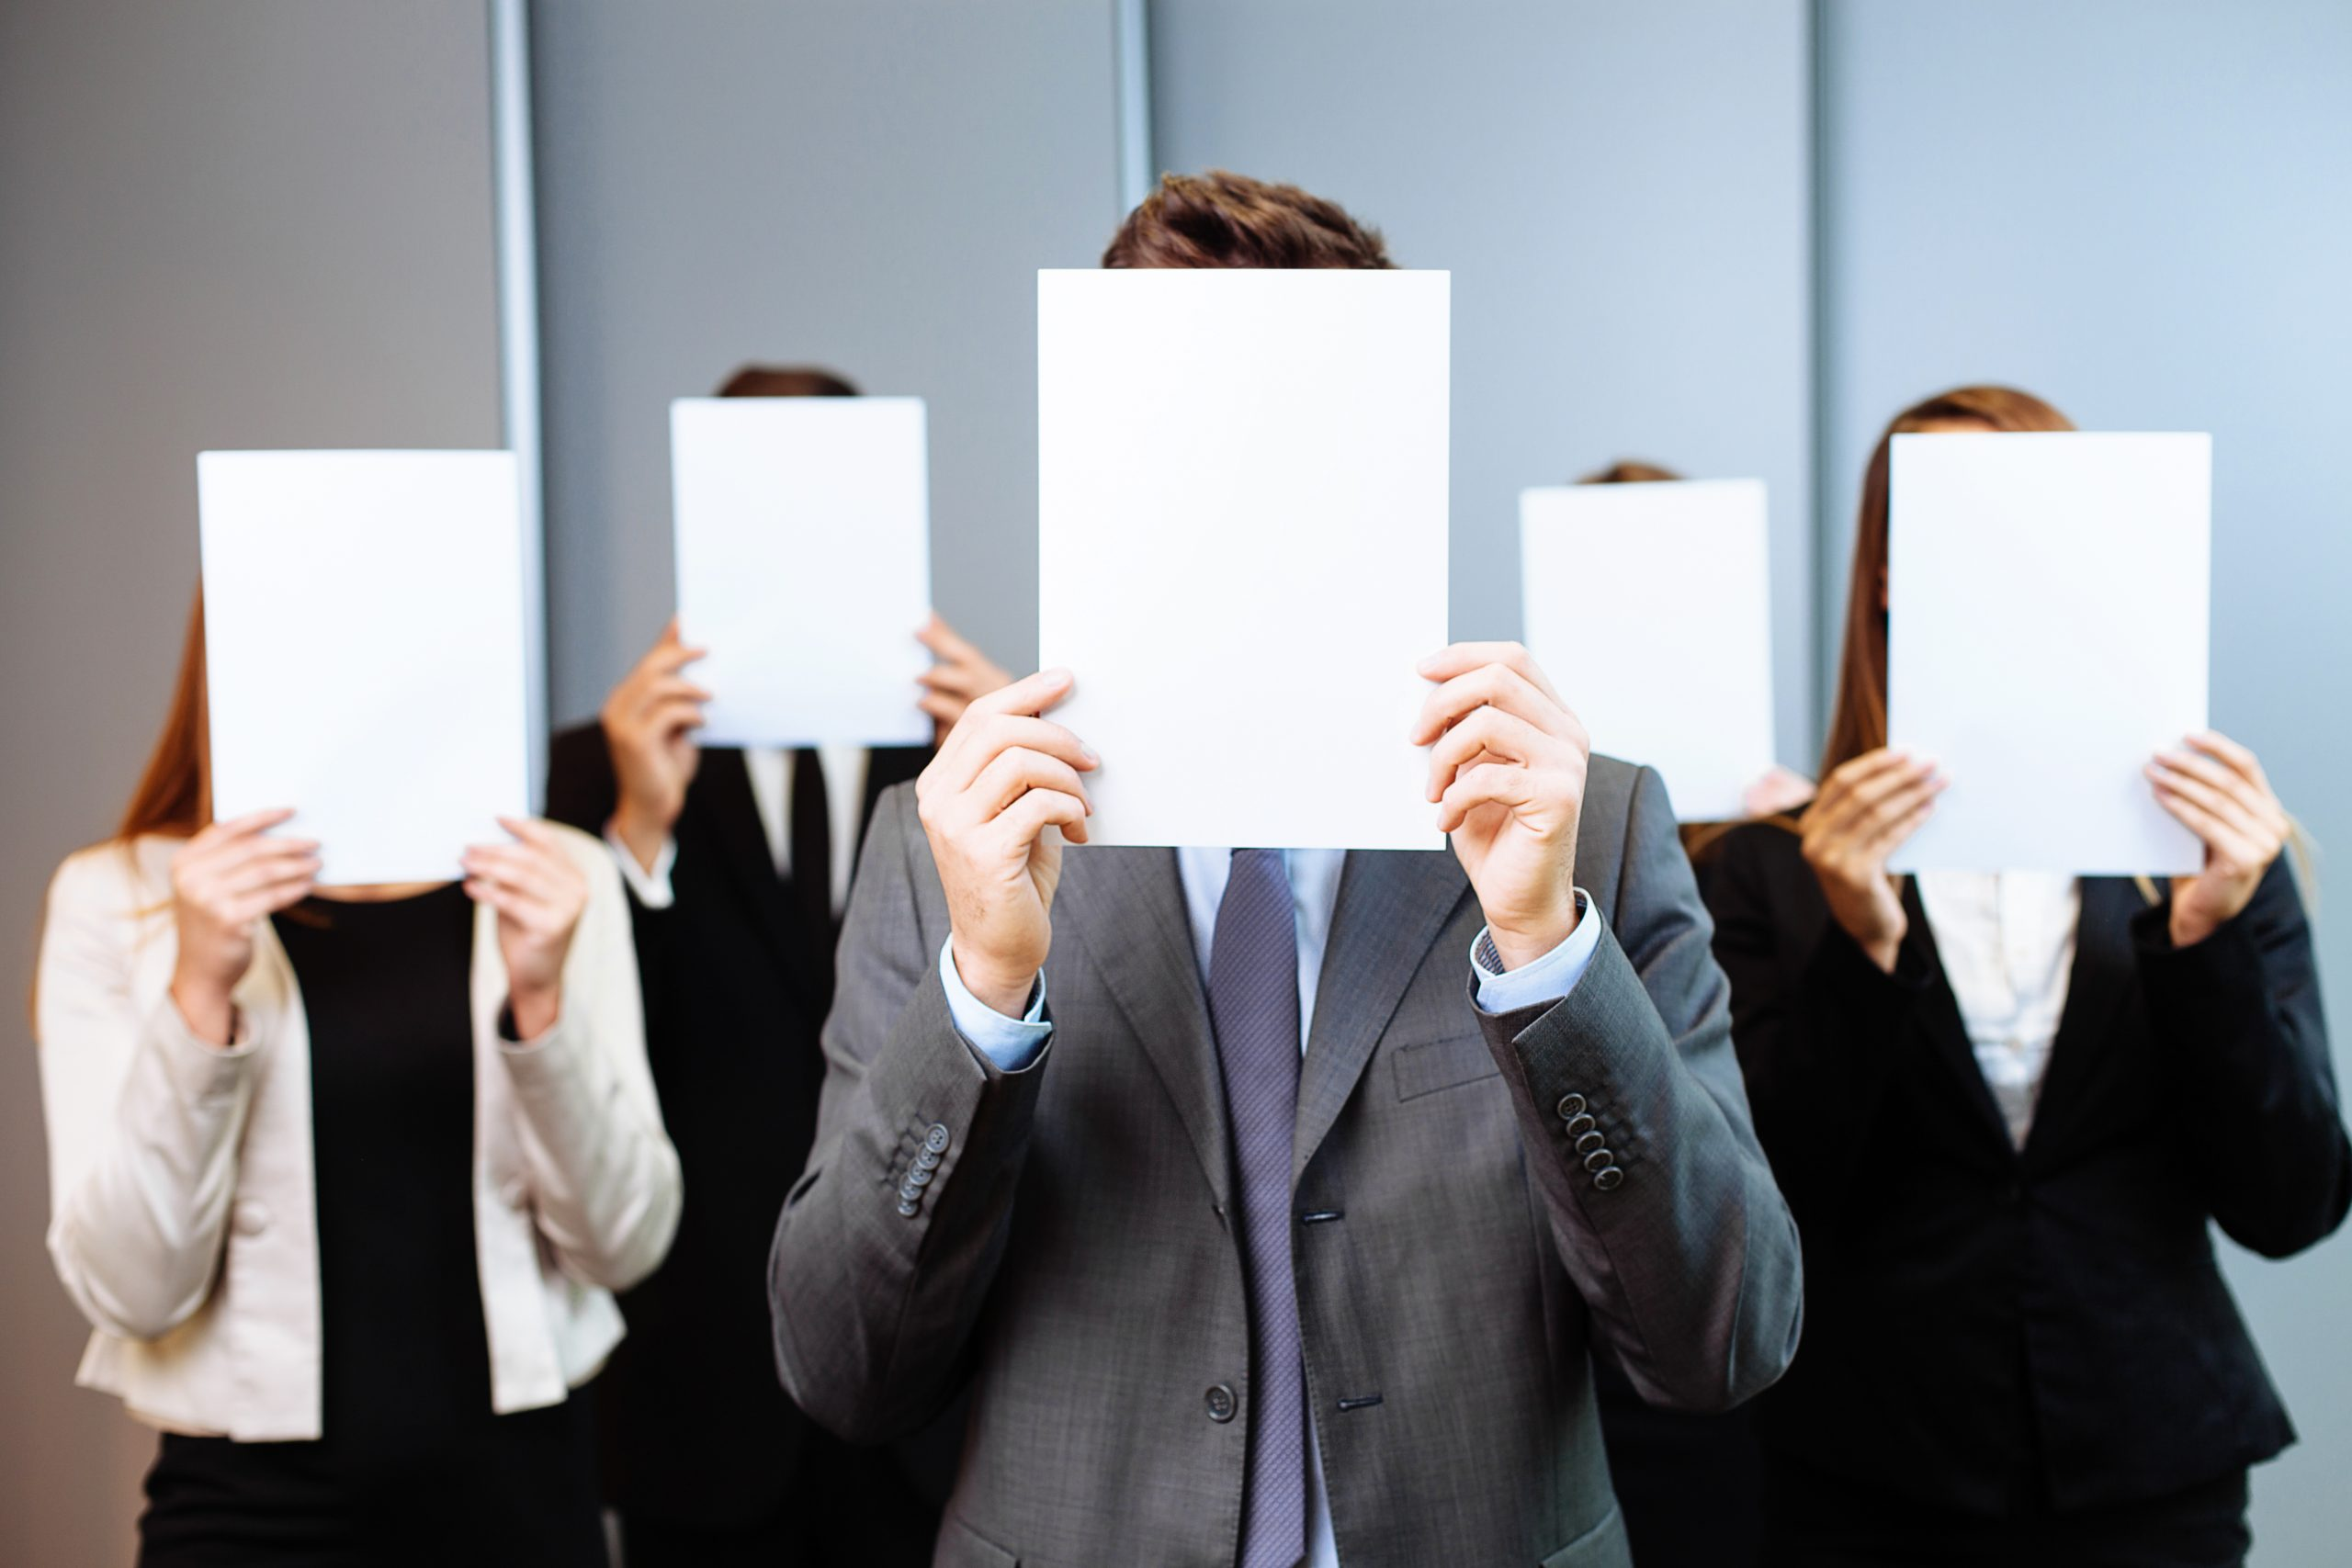 Being Introvert: What Does it Mean for Business Presentations